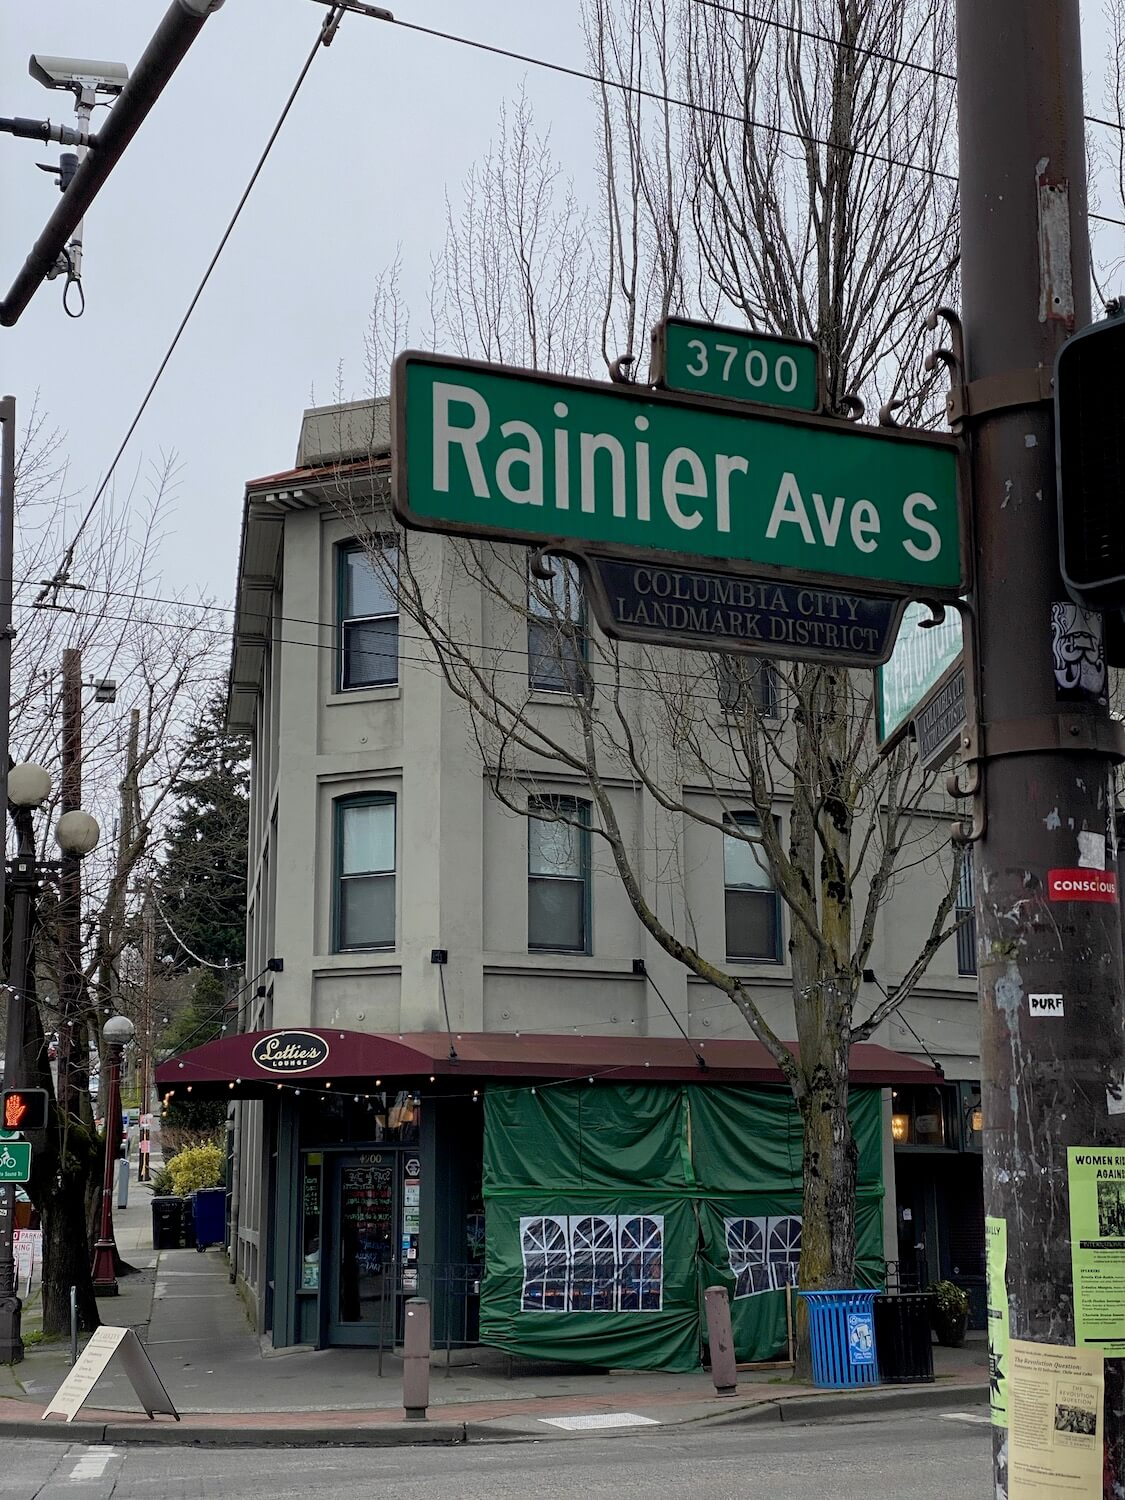 An up close photo of Rainier Ave S street sign in Columbia City district of Seattle.  In the background is a historic looking three story building and this area is a great place to spend time on a layover at Seatac Airport.